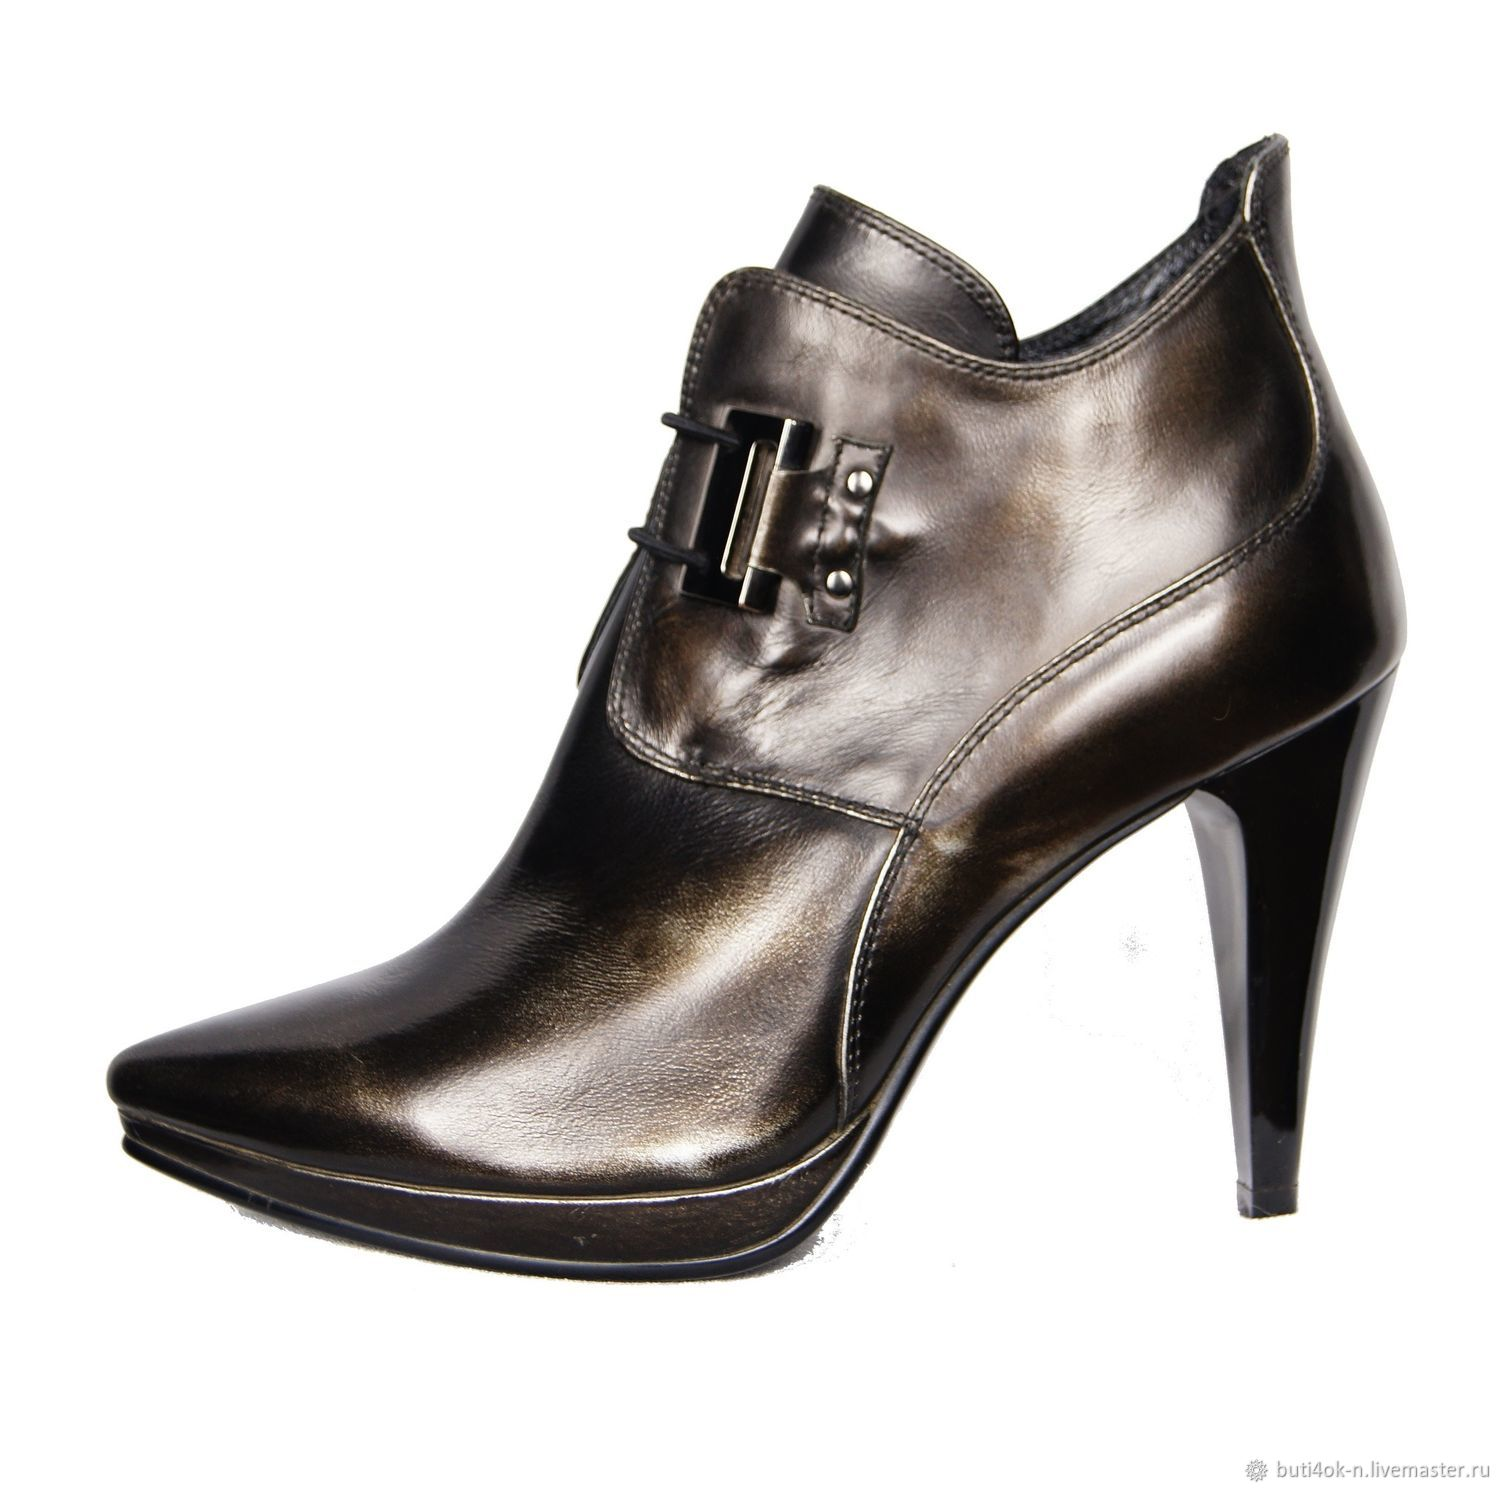 Black ankle boots rubber genuine leather with a Golden sheen, Ankle boots, Nelidovo,  Фото №1